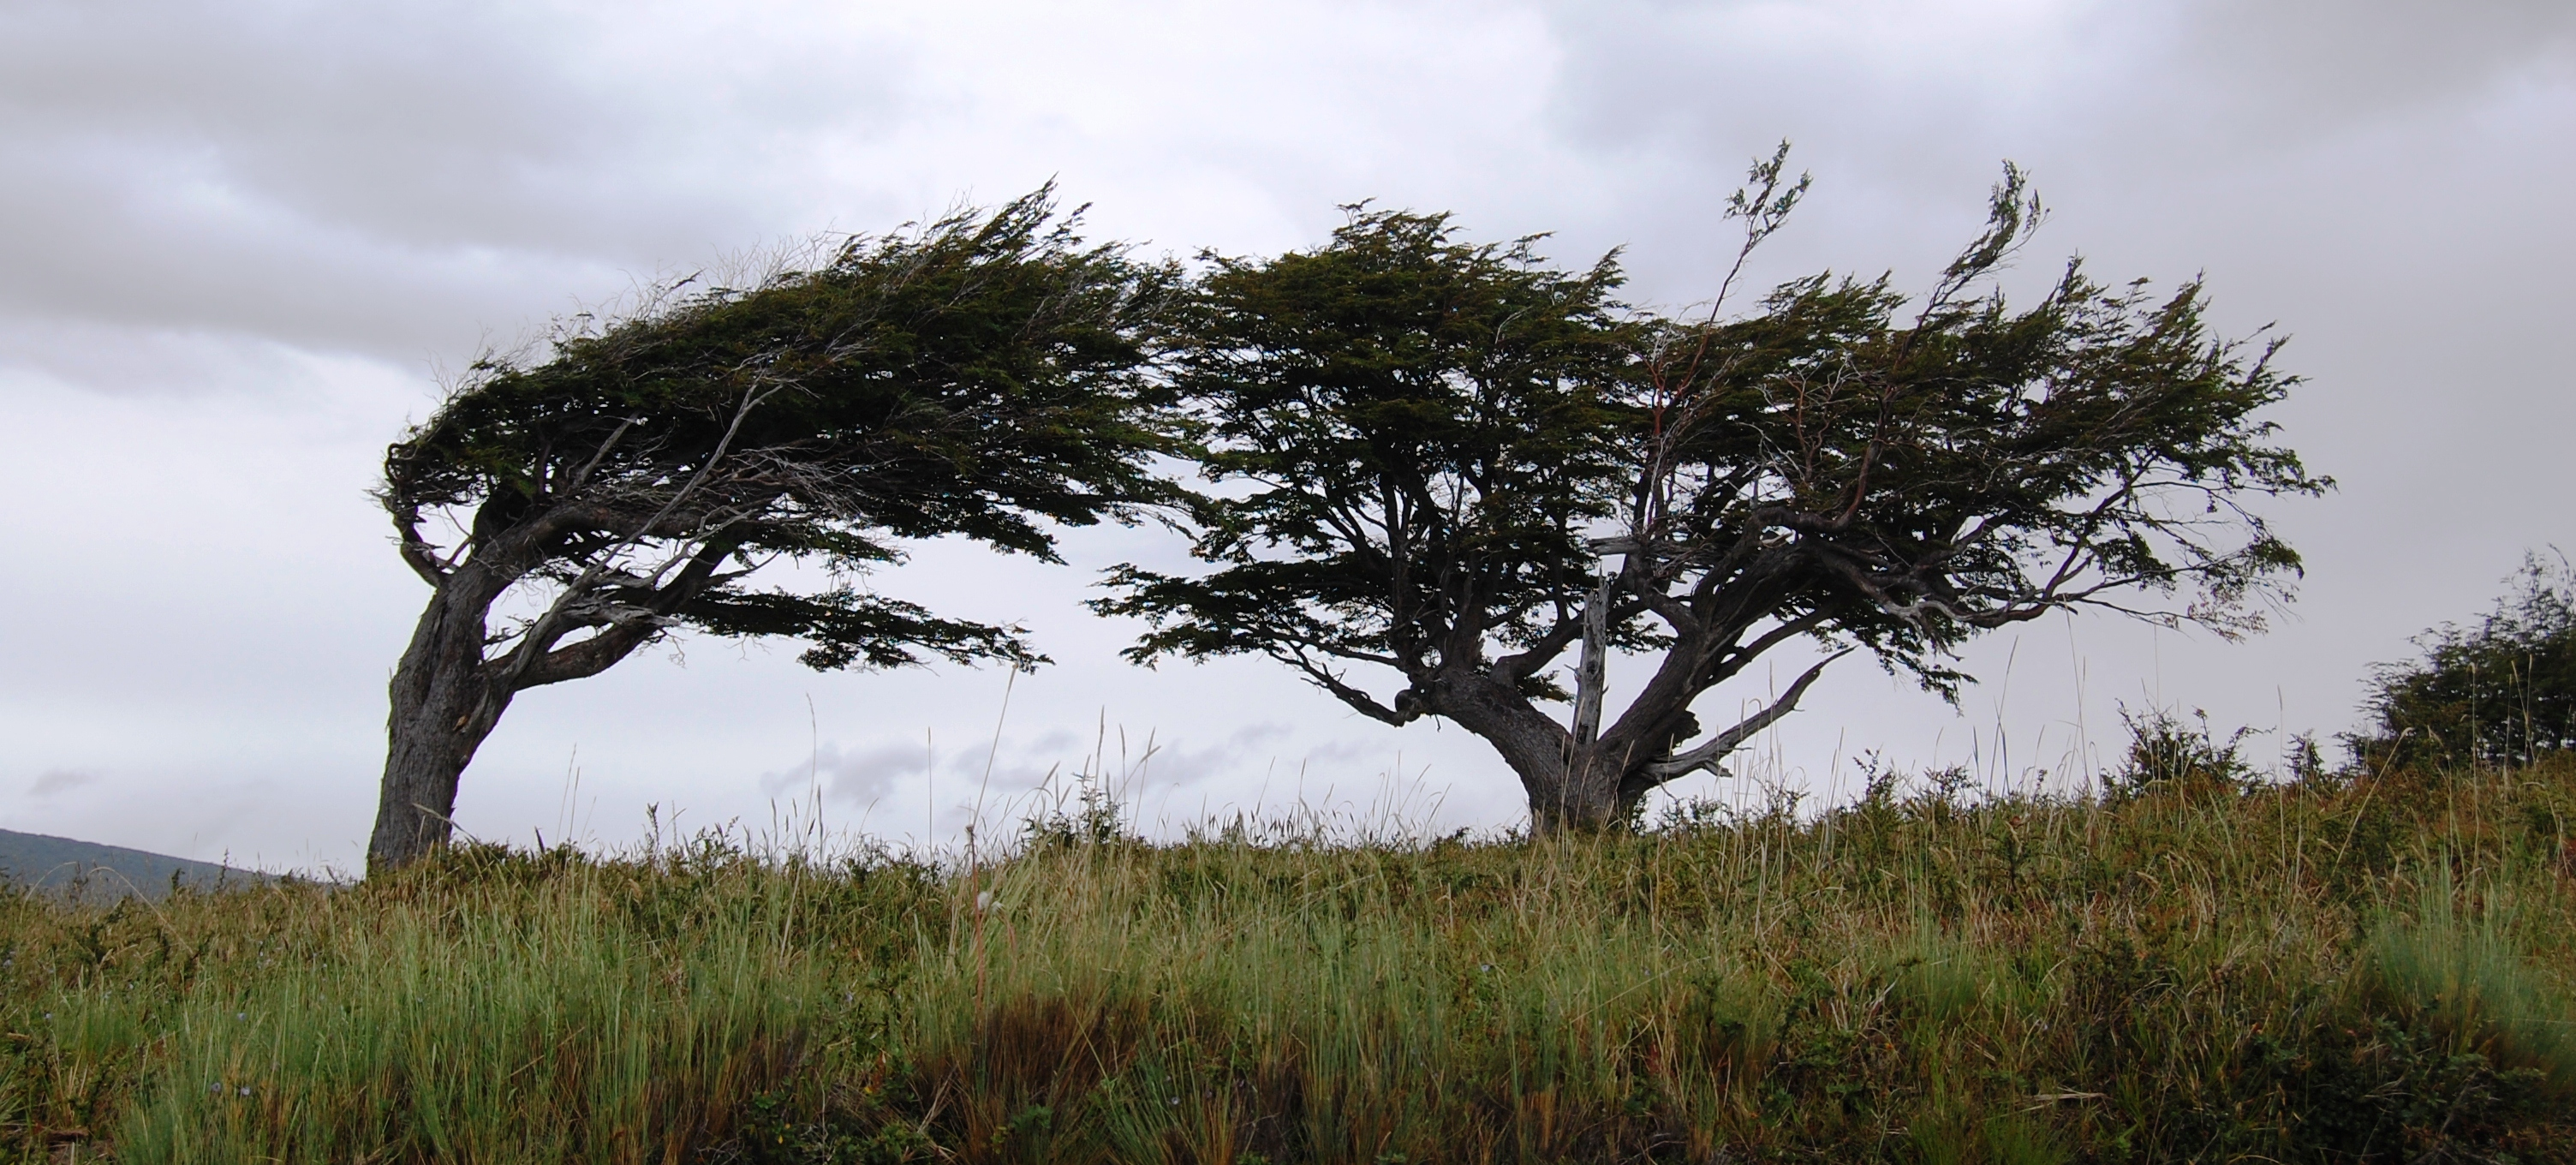 Two low trees with branches worn by weather and wind